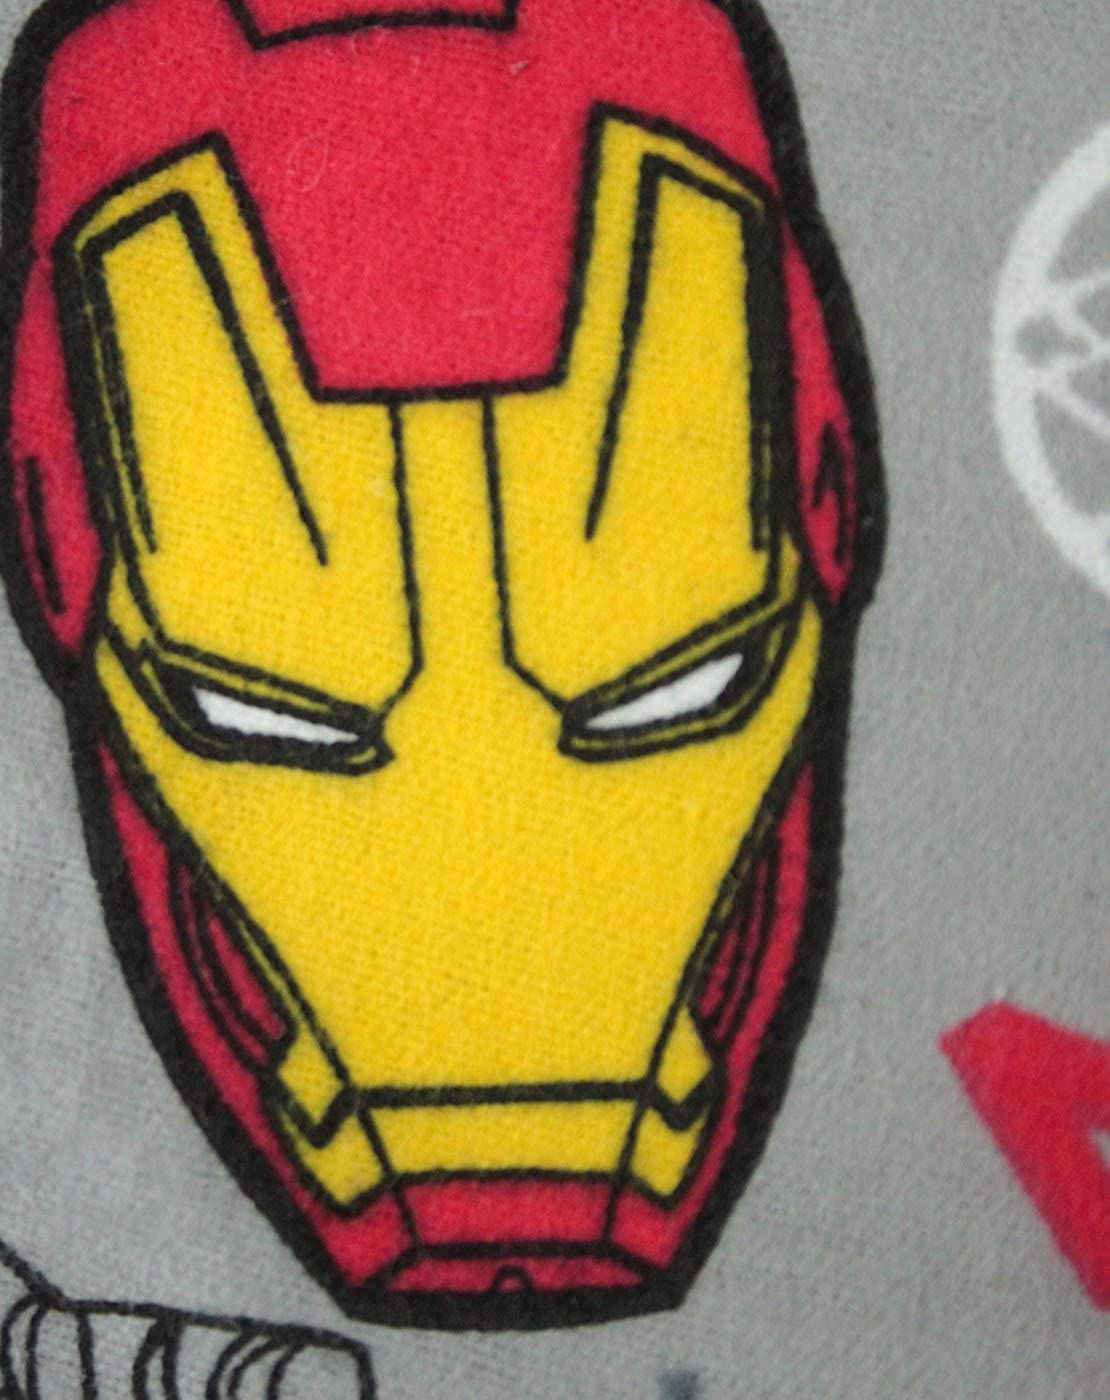 Niño - Official - Iron Man - Pijama (18-24 Meses): Amazon.es: Ropa y accesorios